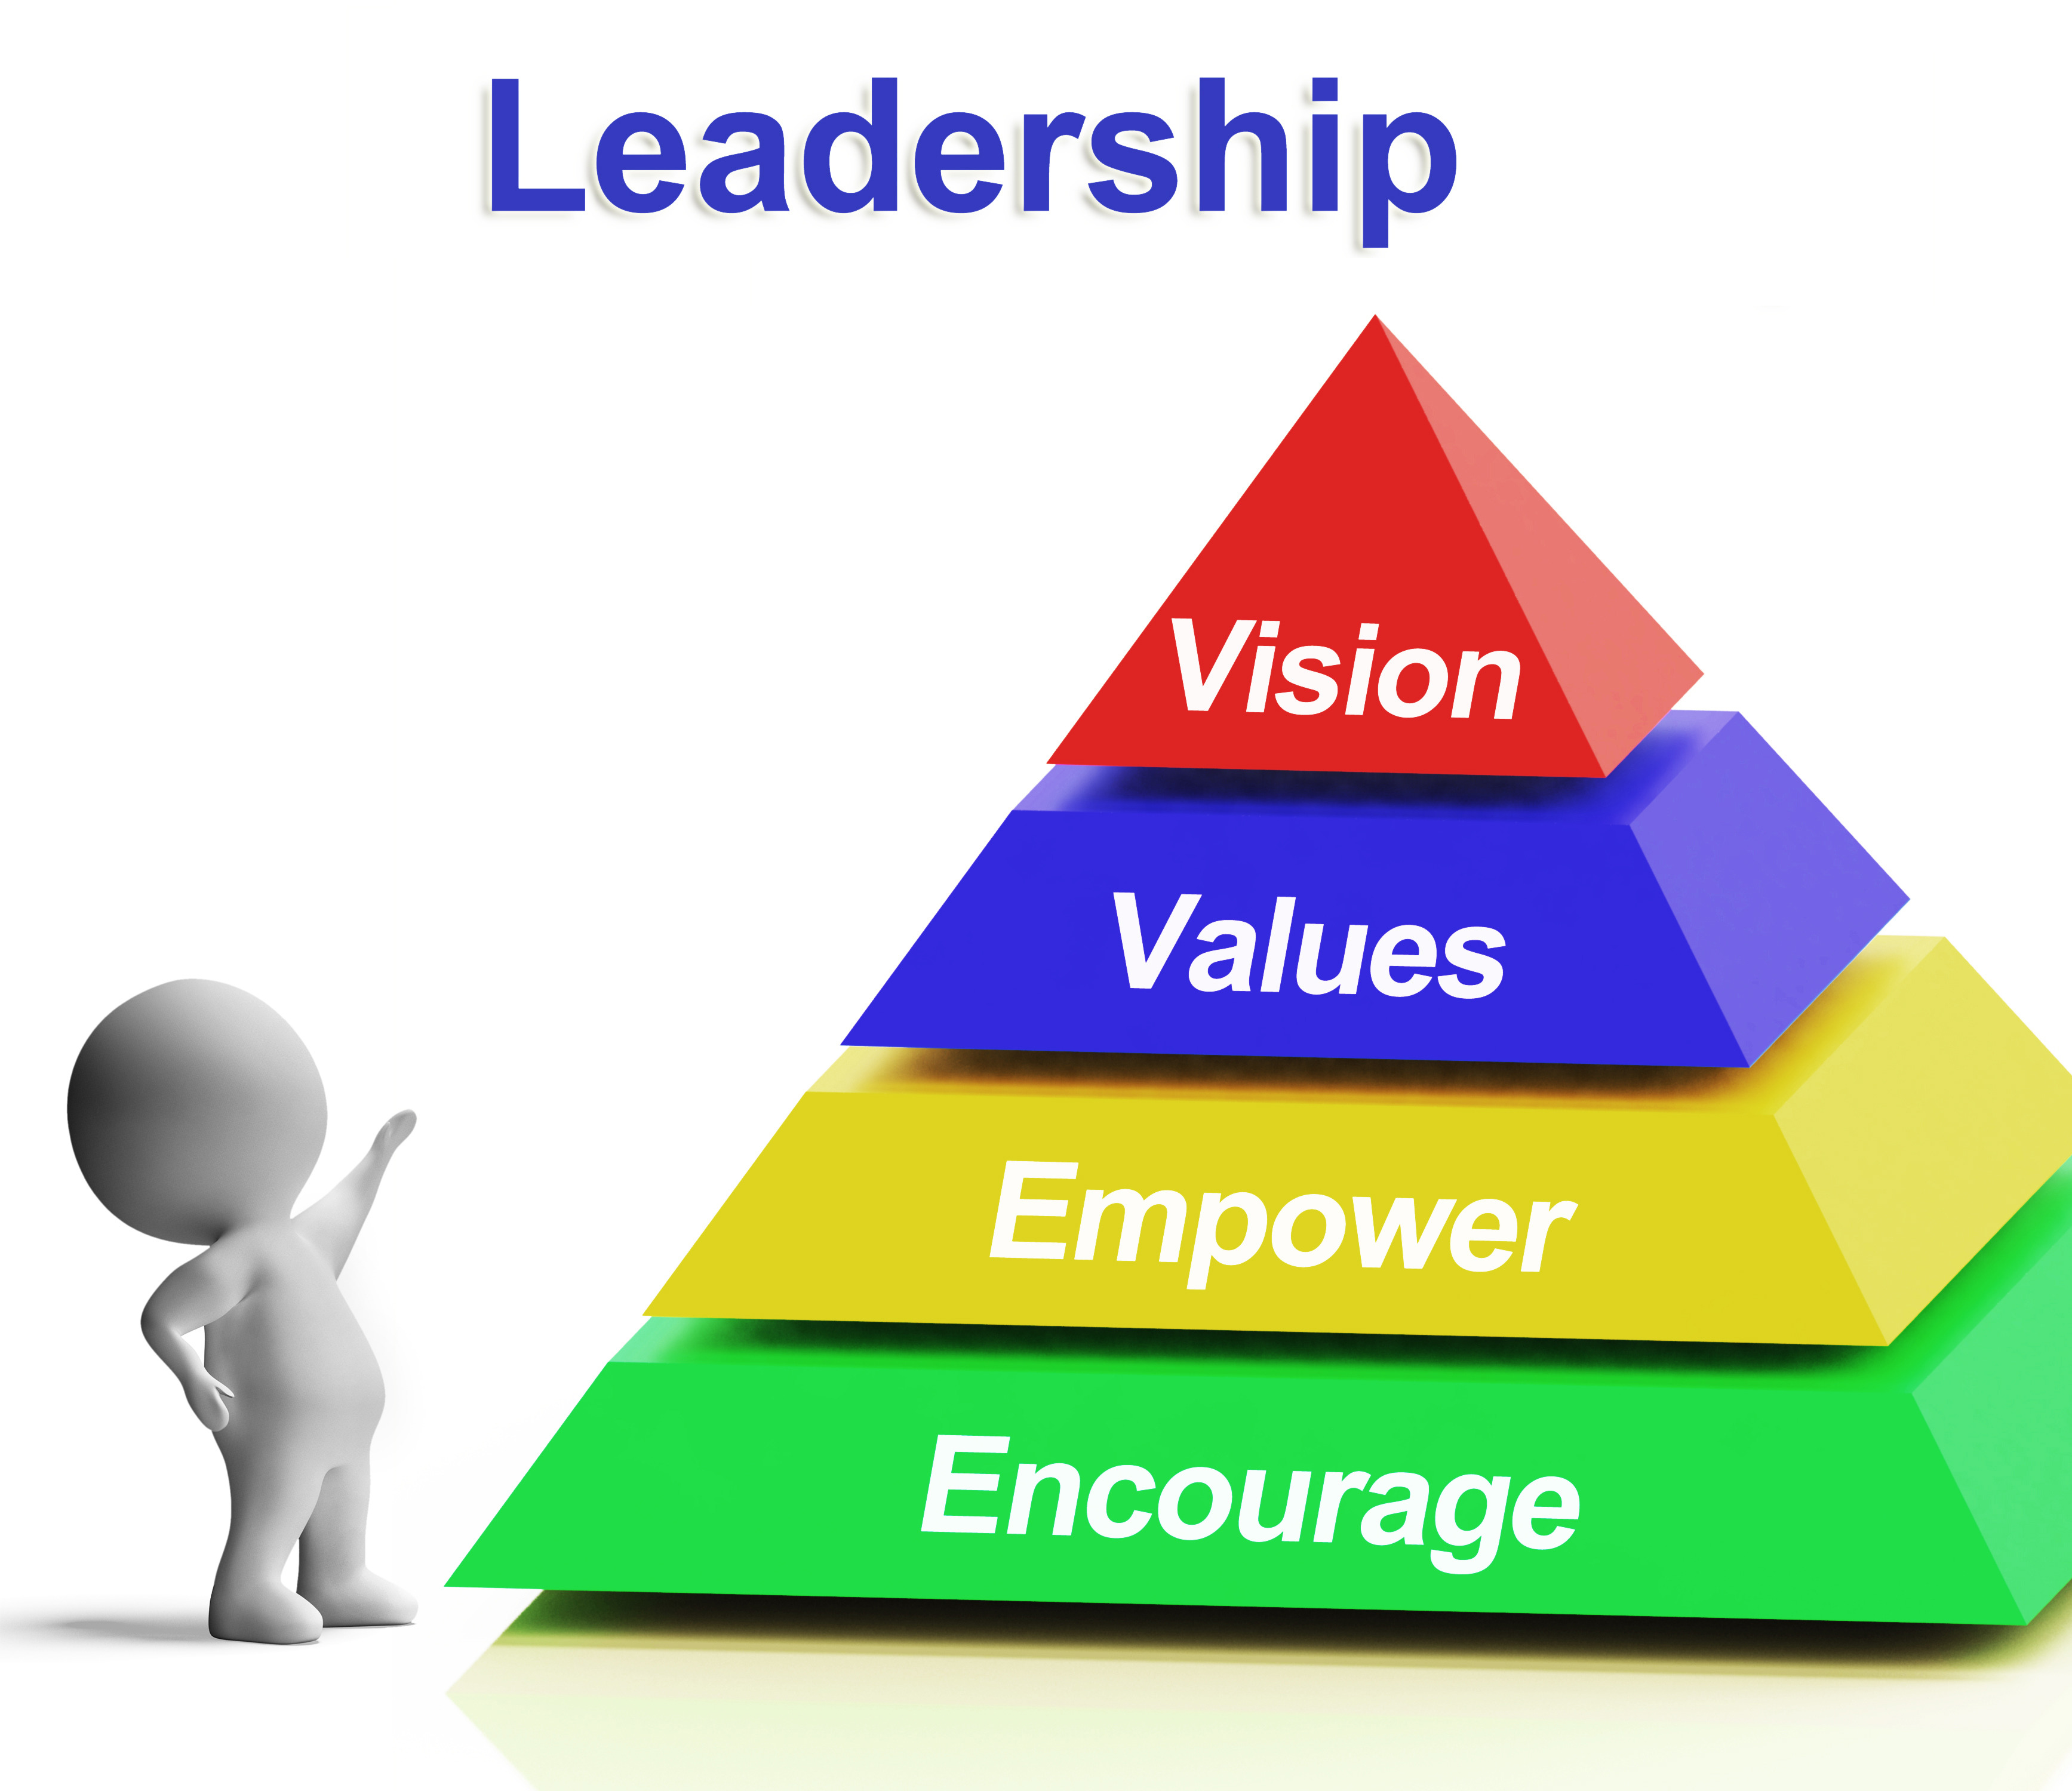 leadership and teamwork skills in caterpillar management essay Leadership is one of the most important skills in nurse managers it is a process of interaction between the leader and the staff, influencing them positively toward achieving the goals and.